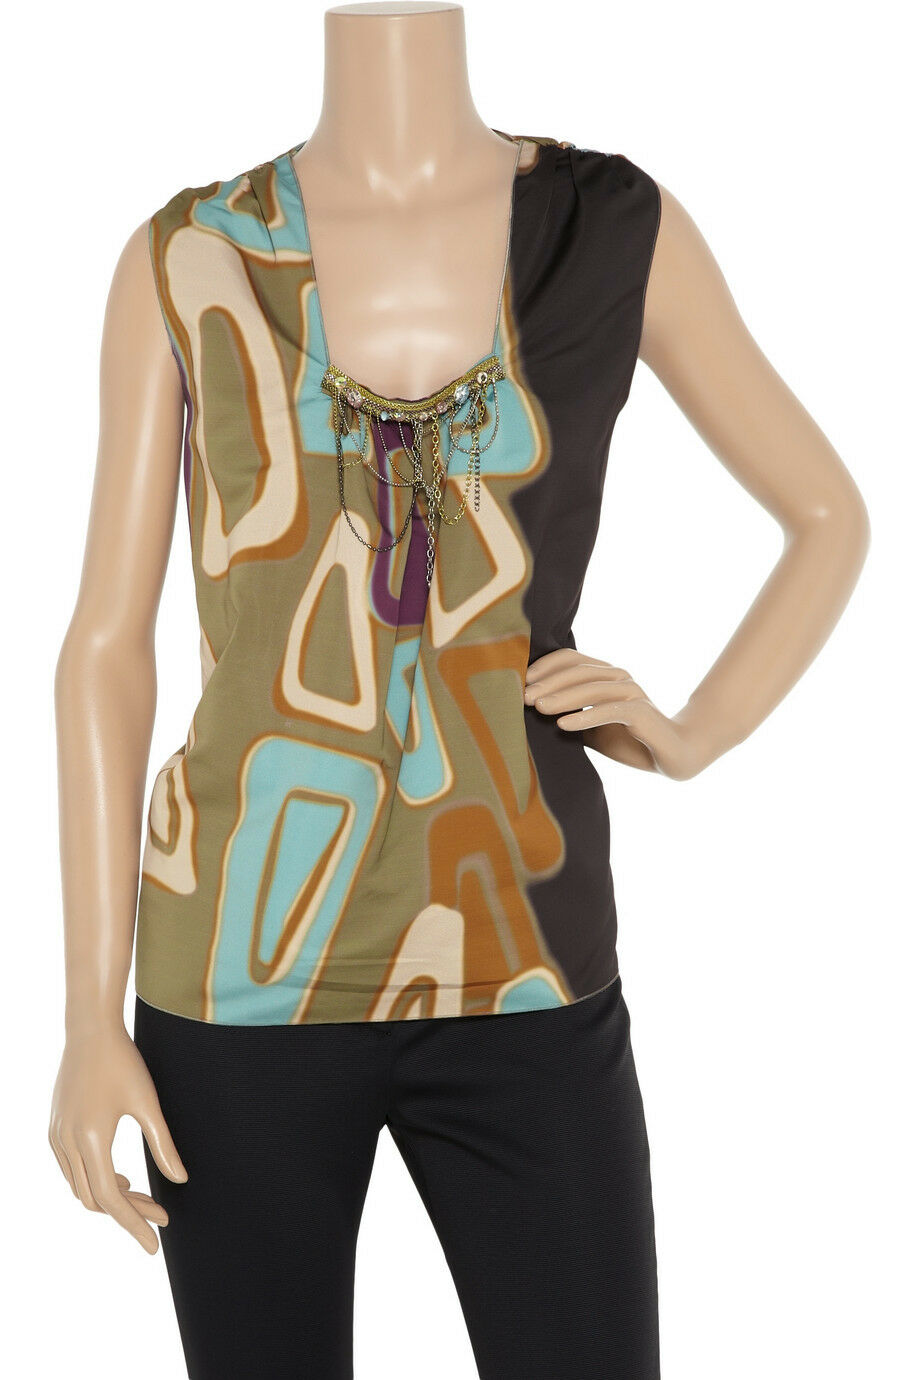 AUTH NWT M Missoni Embellished faille top Sz 42 US 8